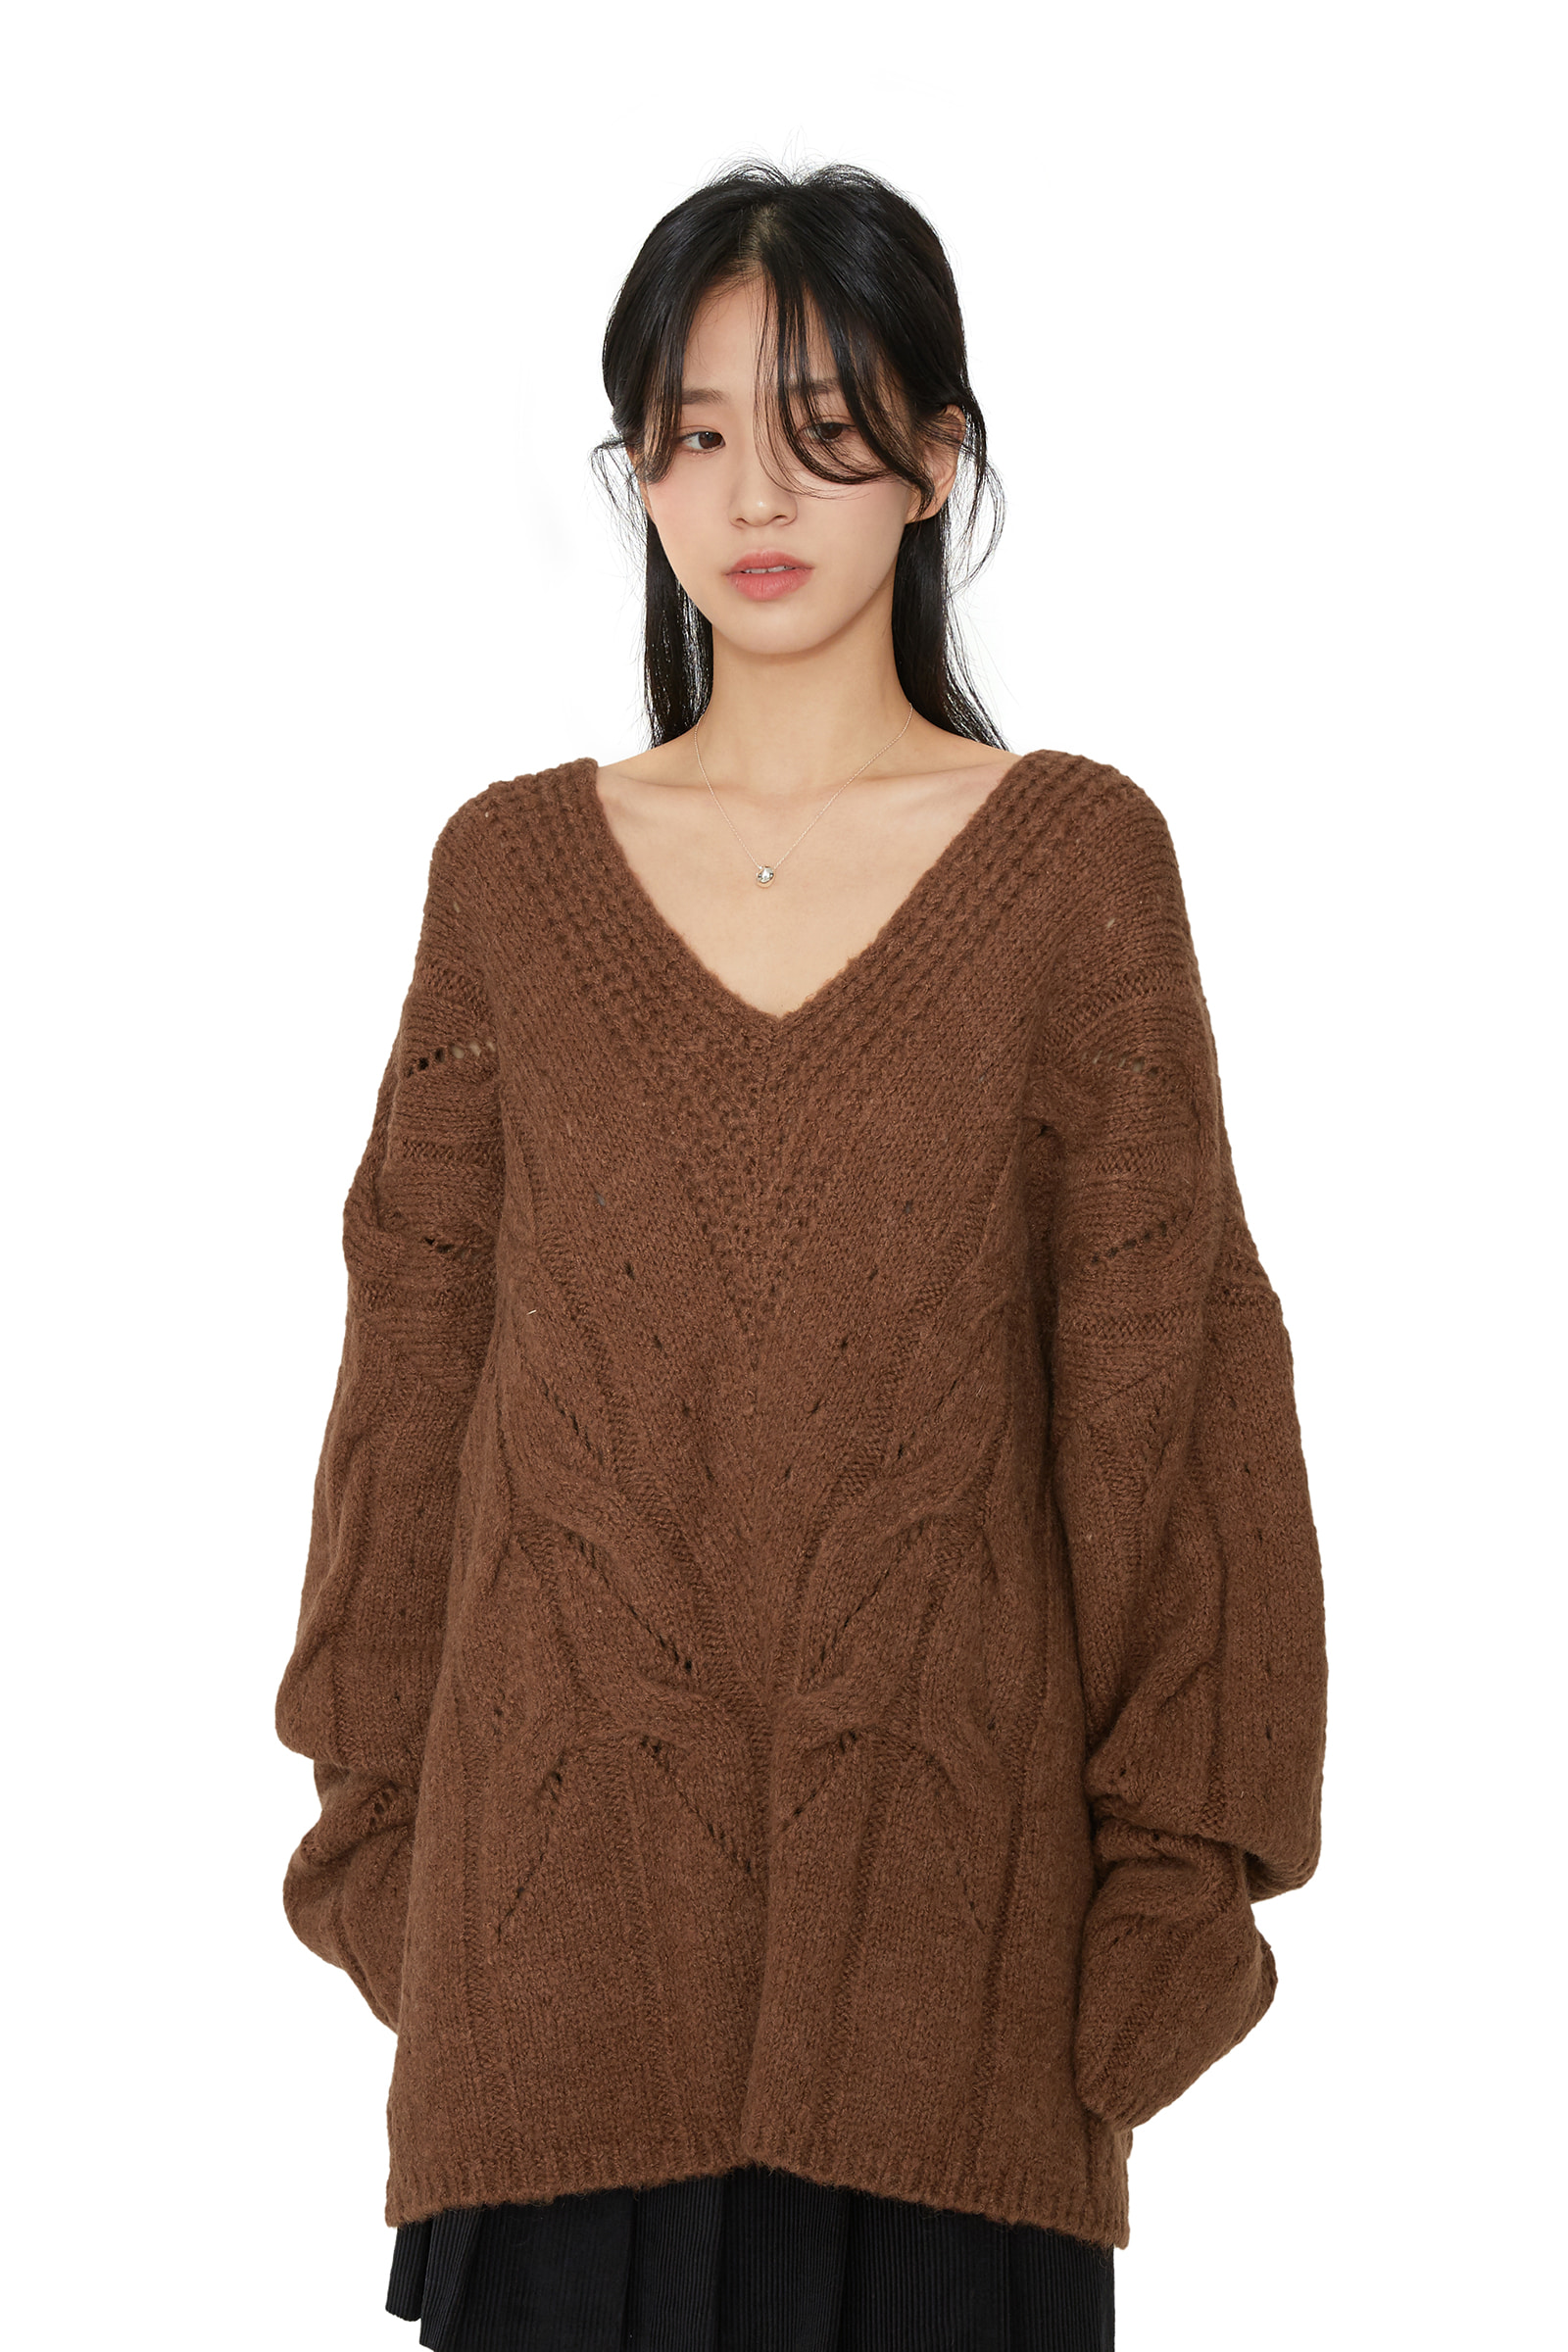 Lunch Punching Overfit V-Neck Knit